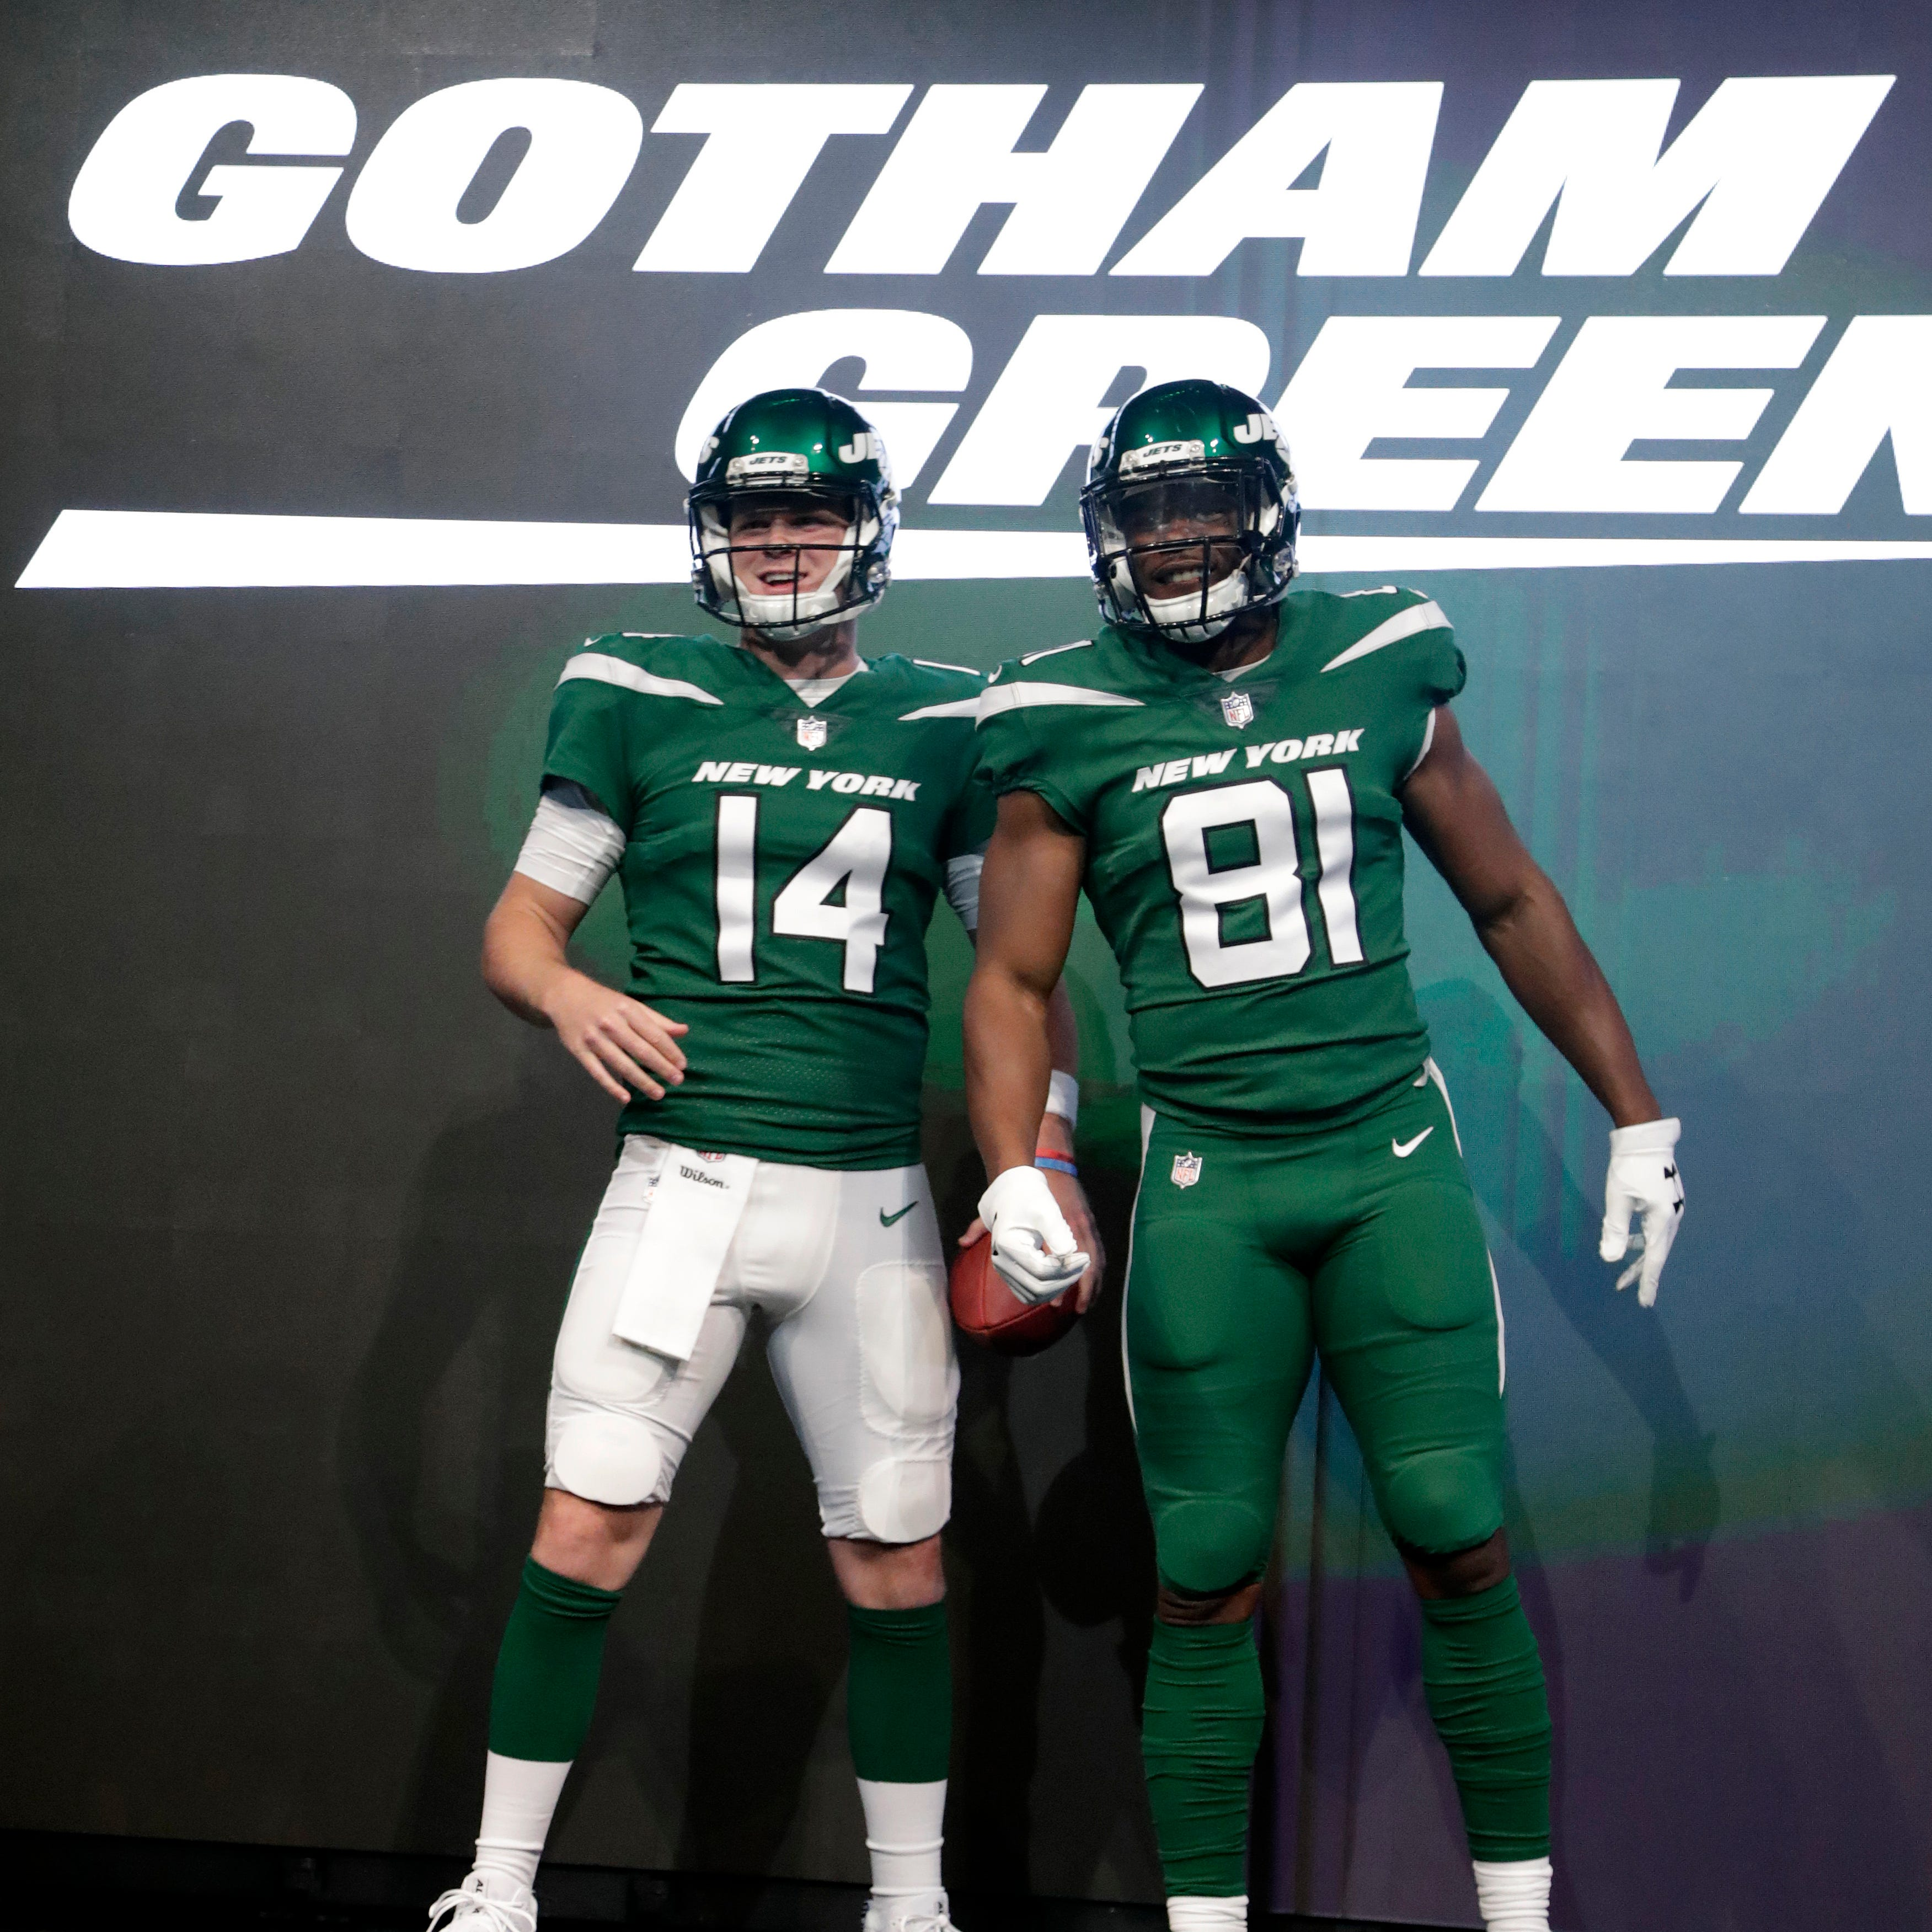 NY Jets 2019 schedule: When do they face Giants, and who are they playing in prime time?